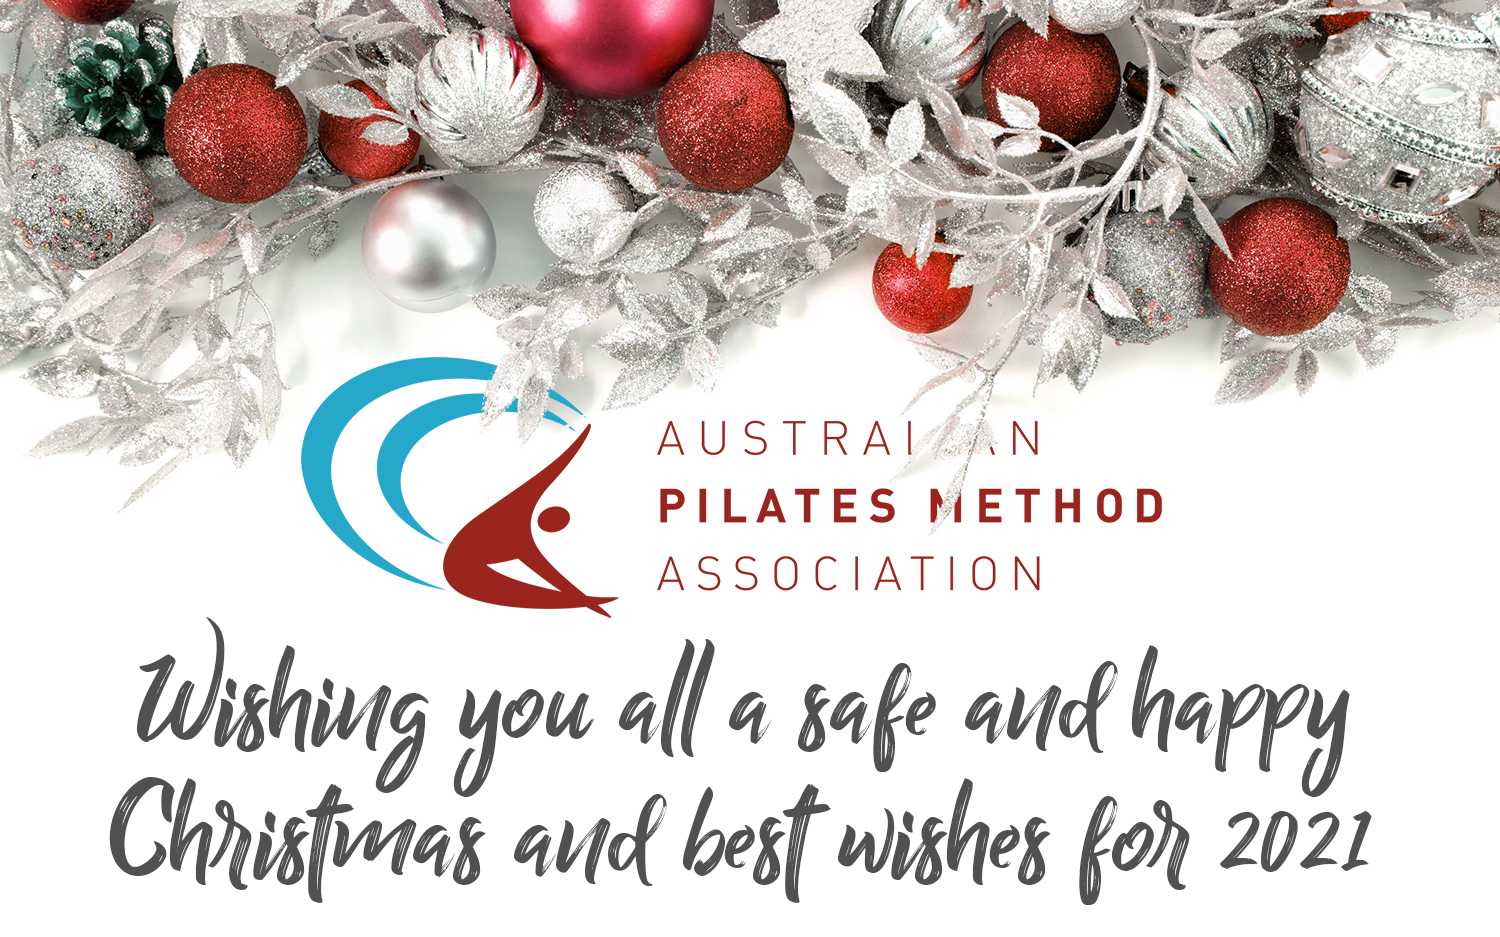 Merry Christmas from the APMA Council